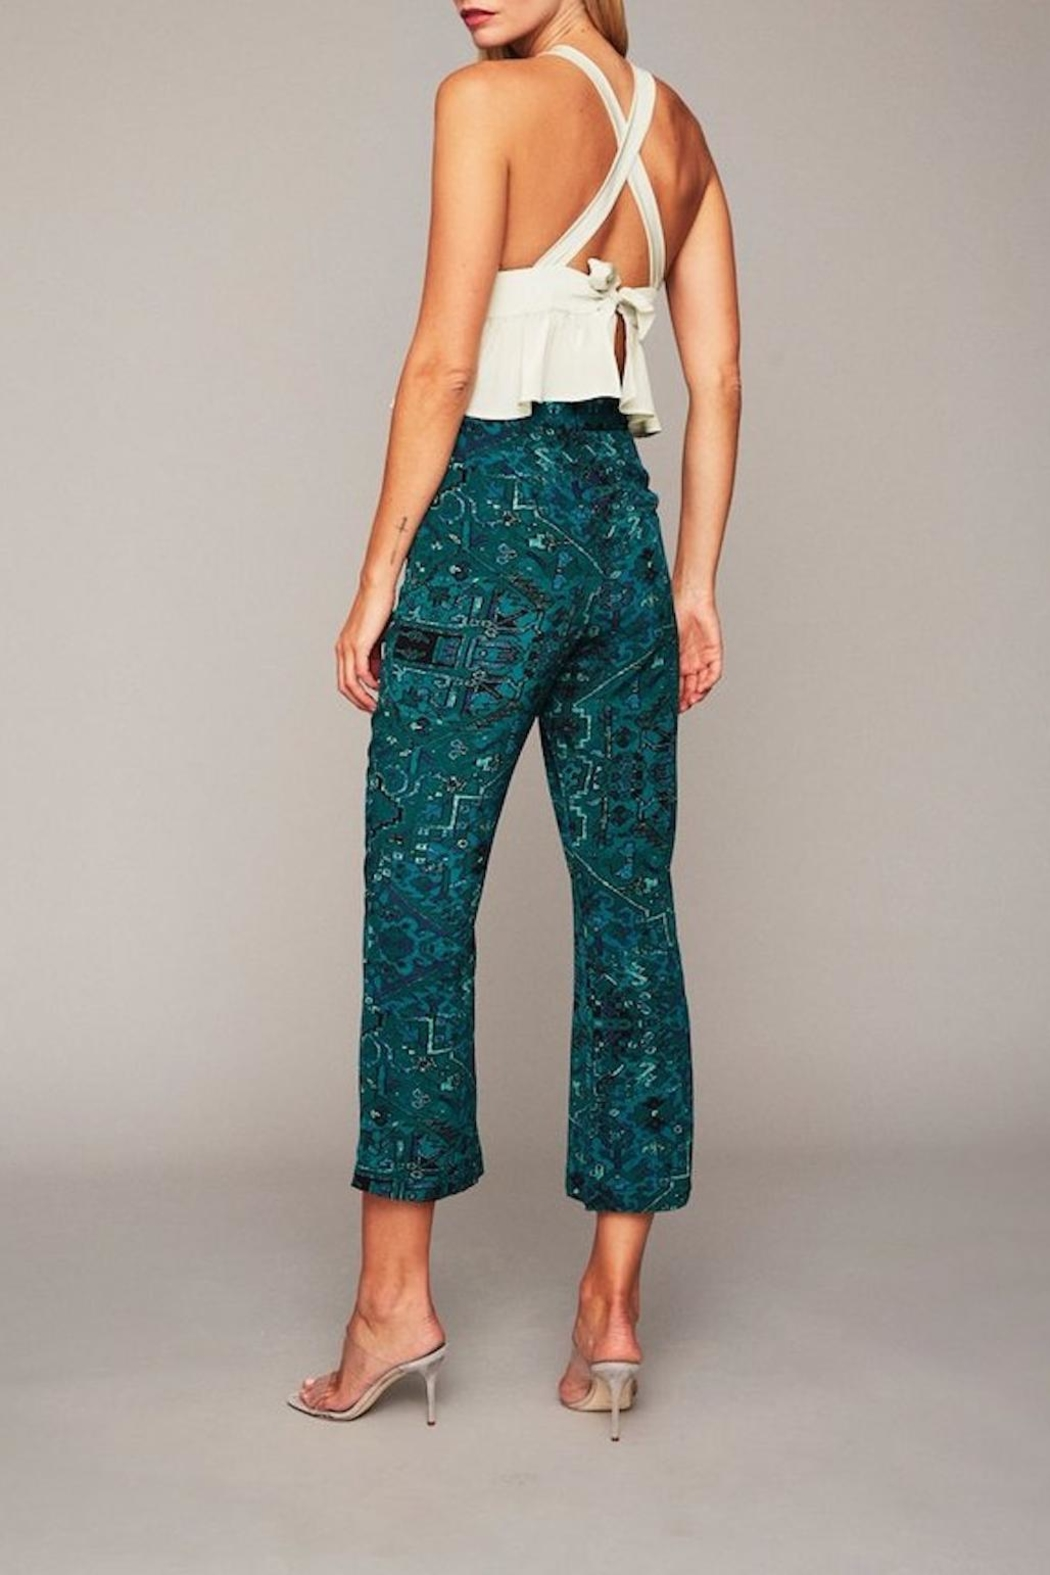 Stone Cold Fox Isla Trousers - Side Cropped Image